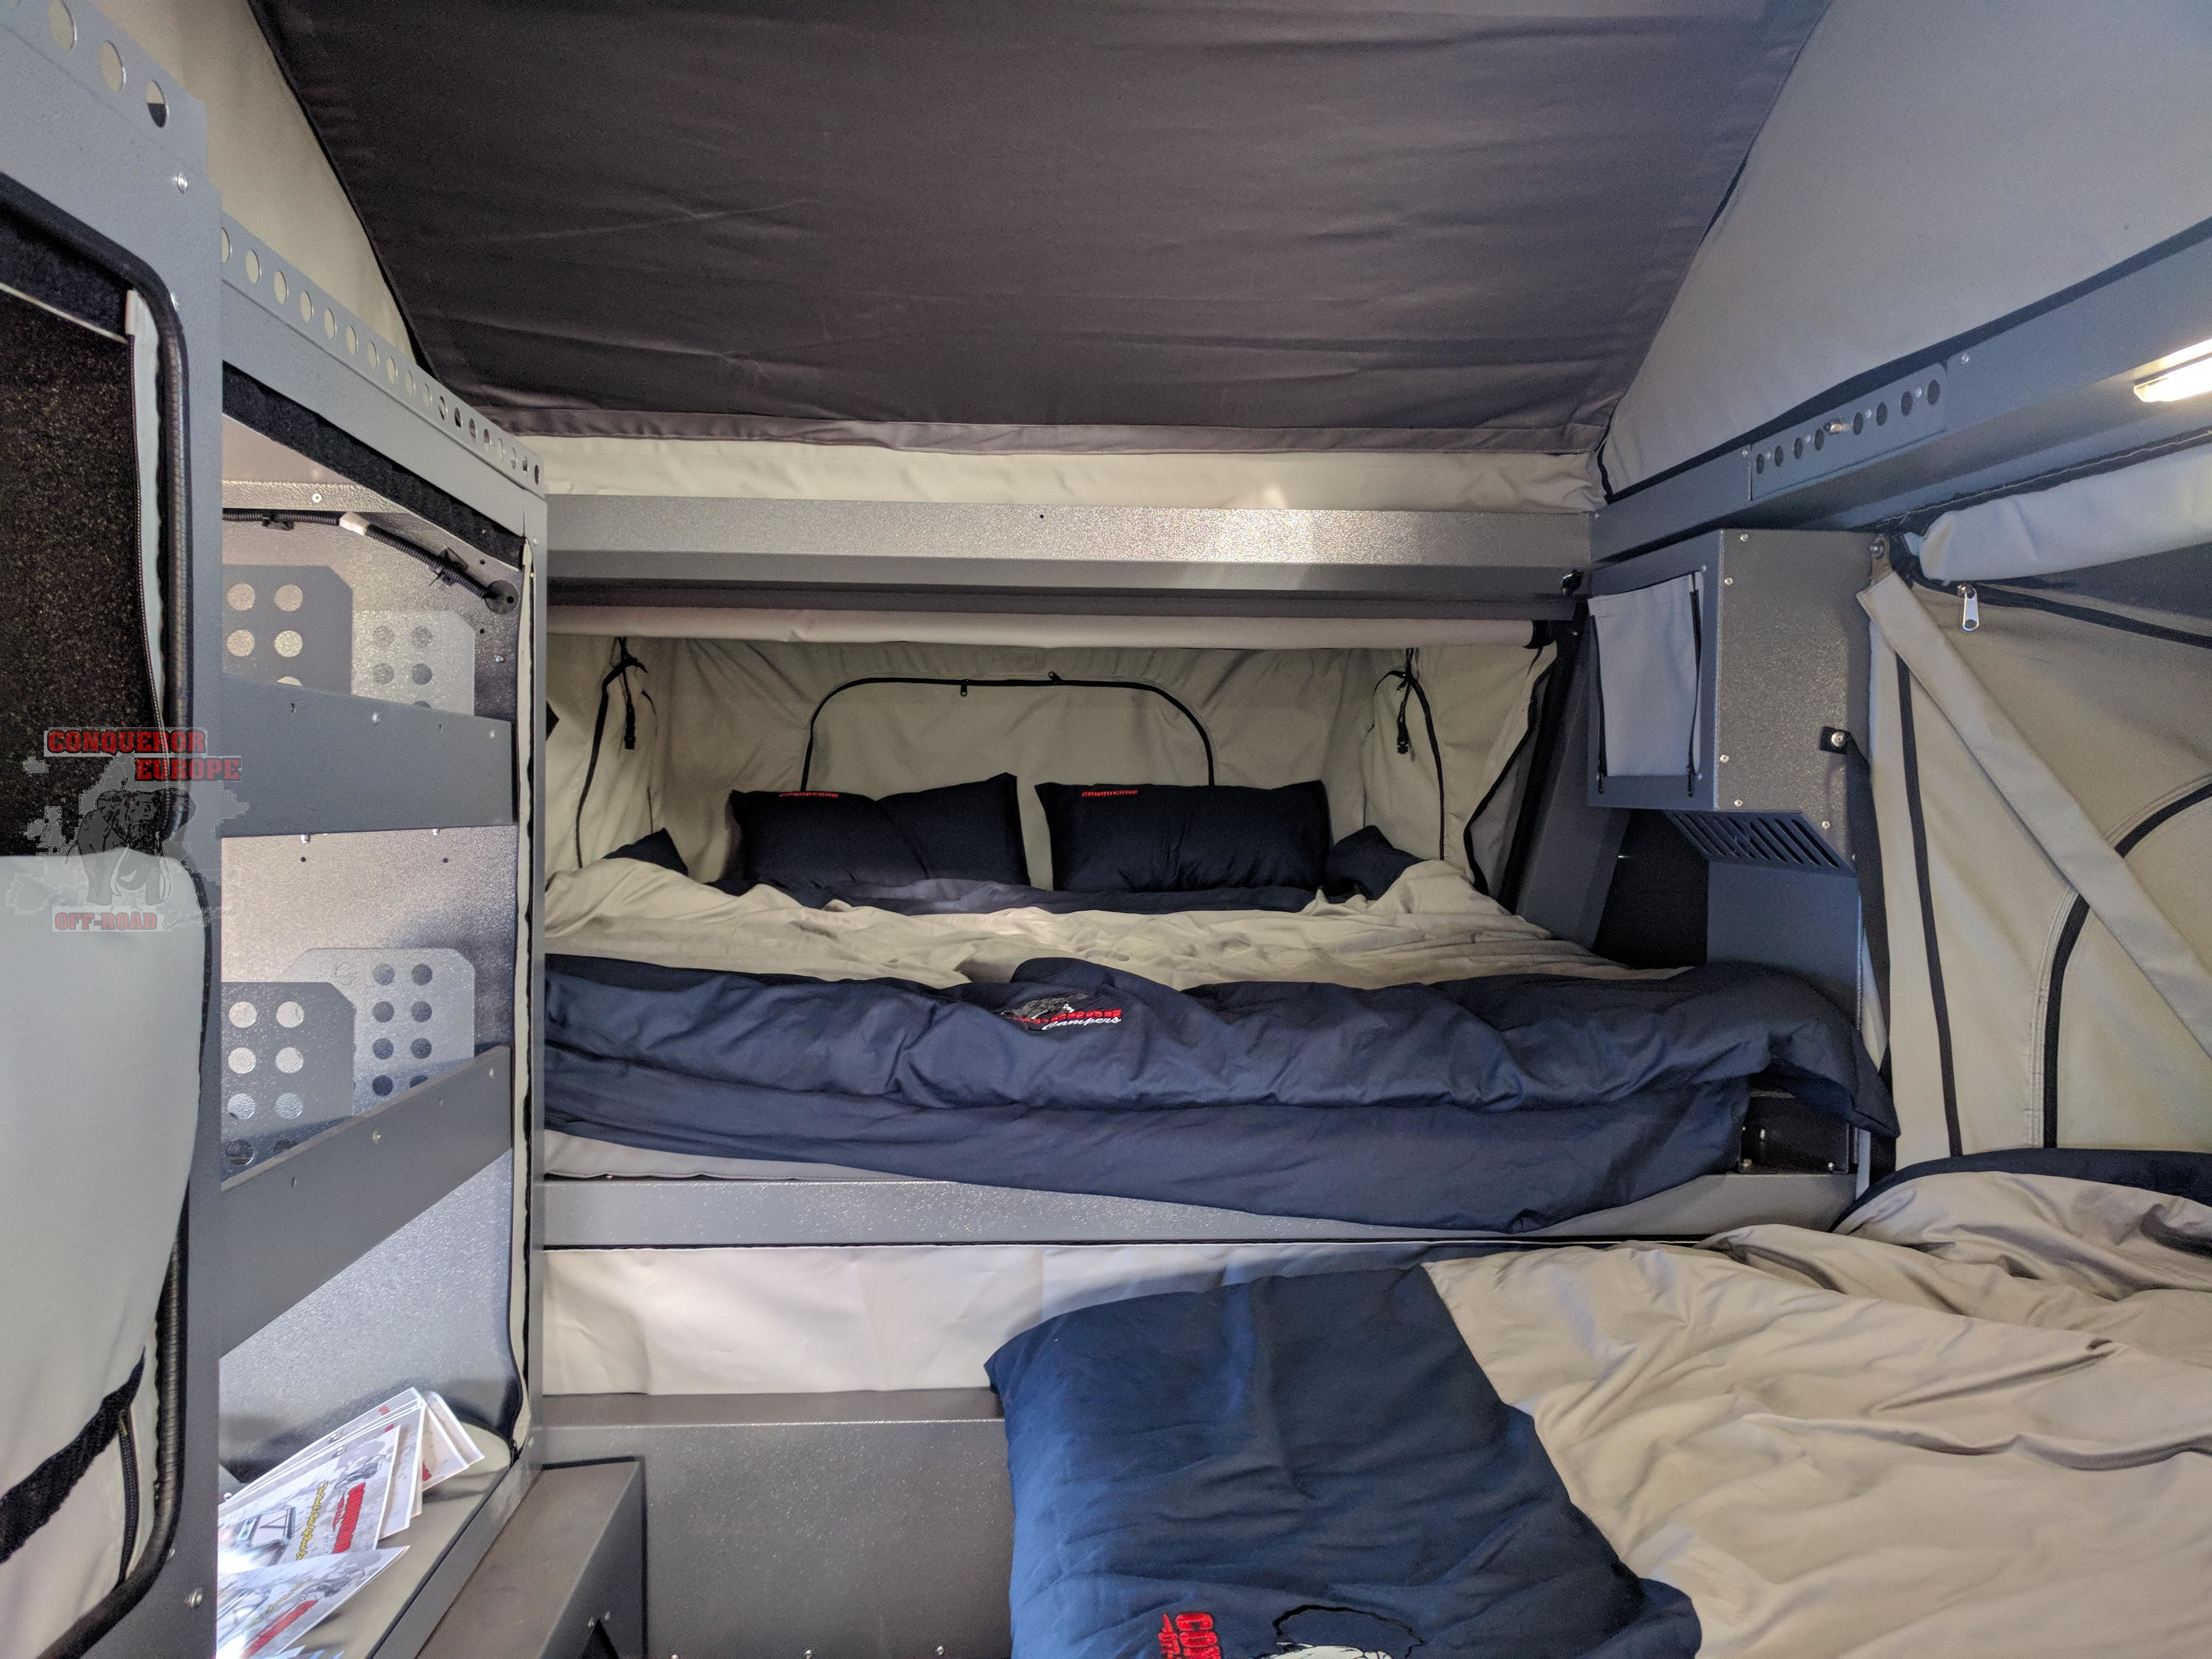 Inside, front bed and side bed to the right